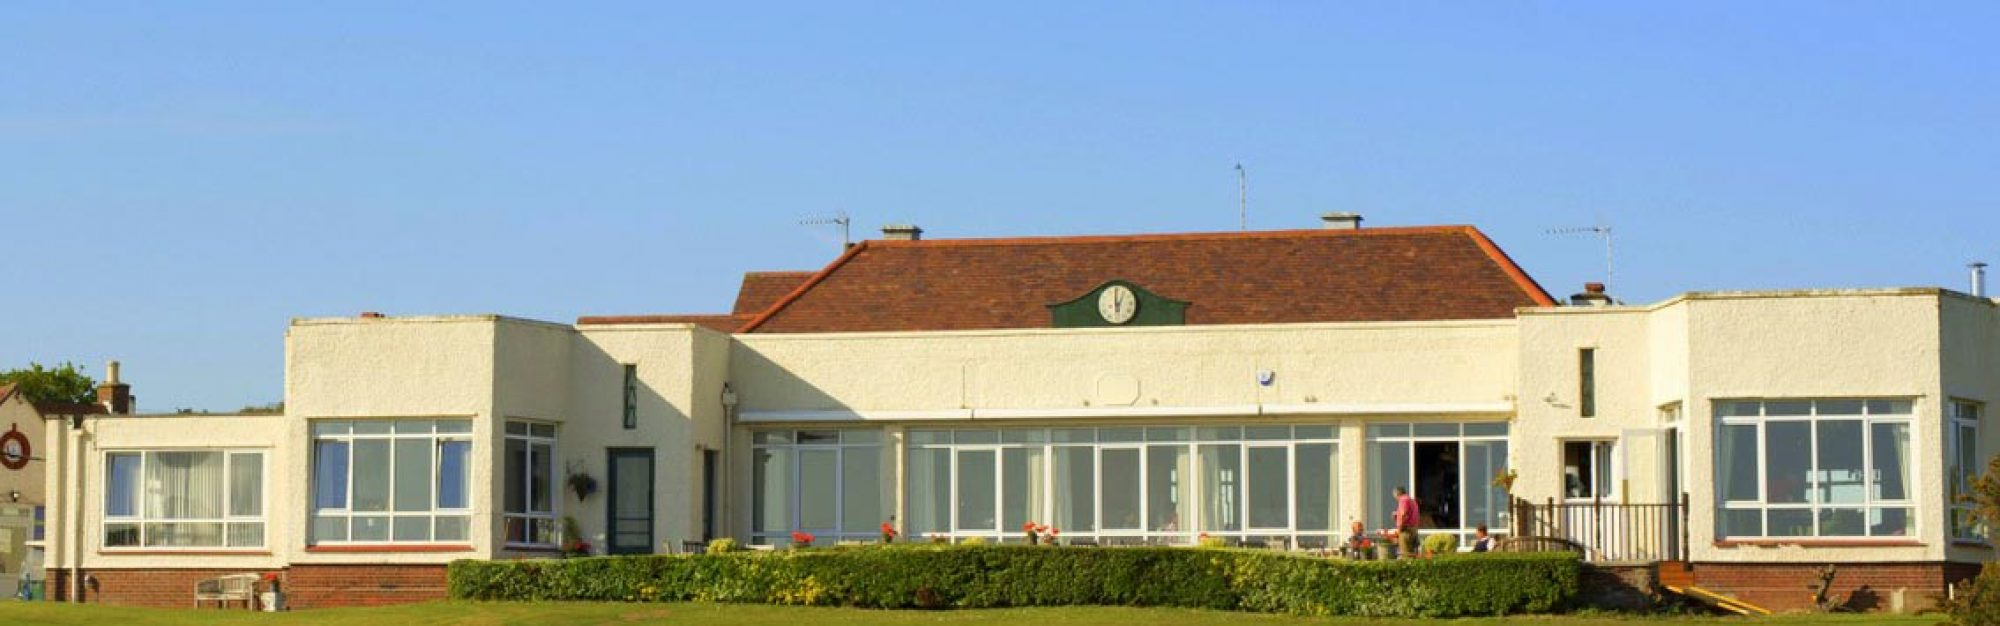 They laid bare the 'anomaly' in covid grants - but what happened to Frinton?